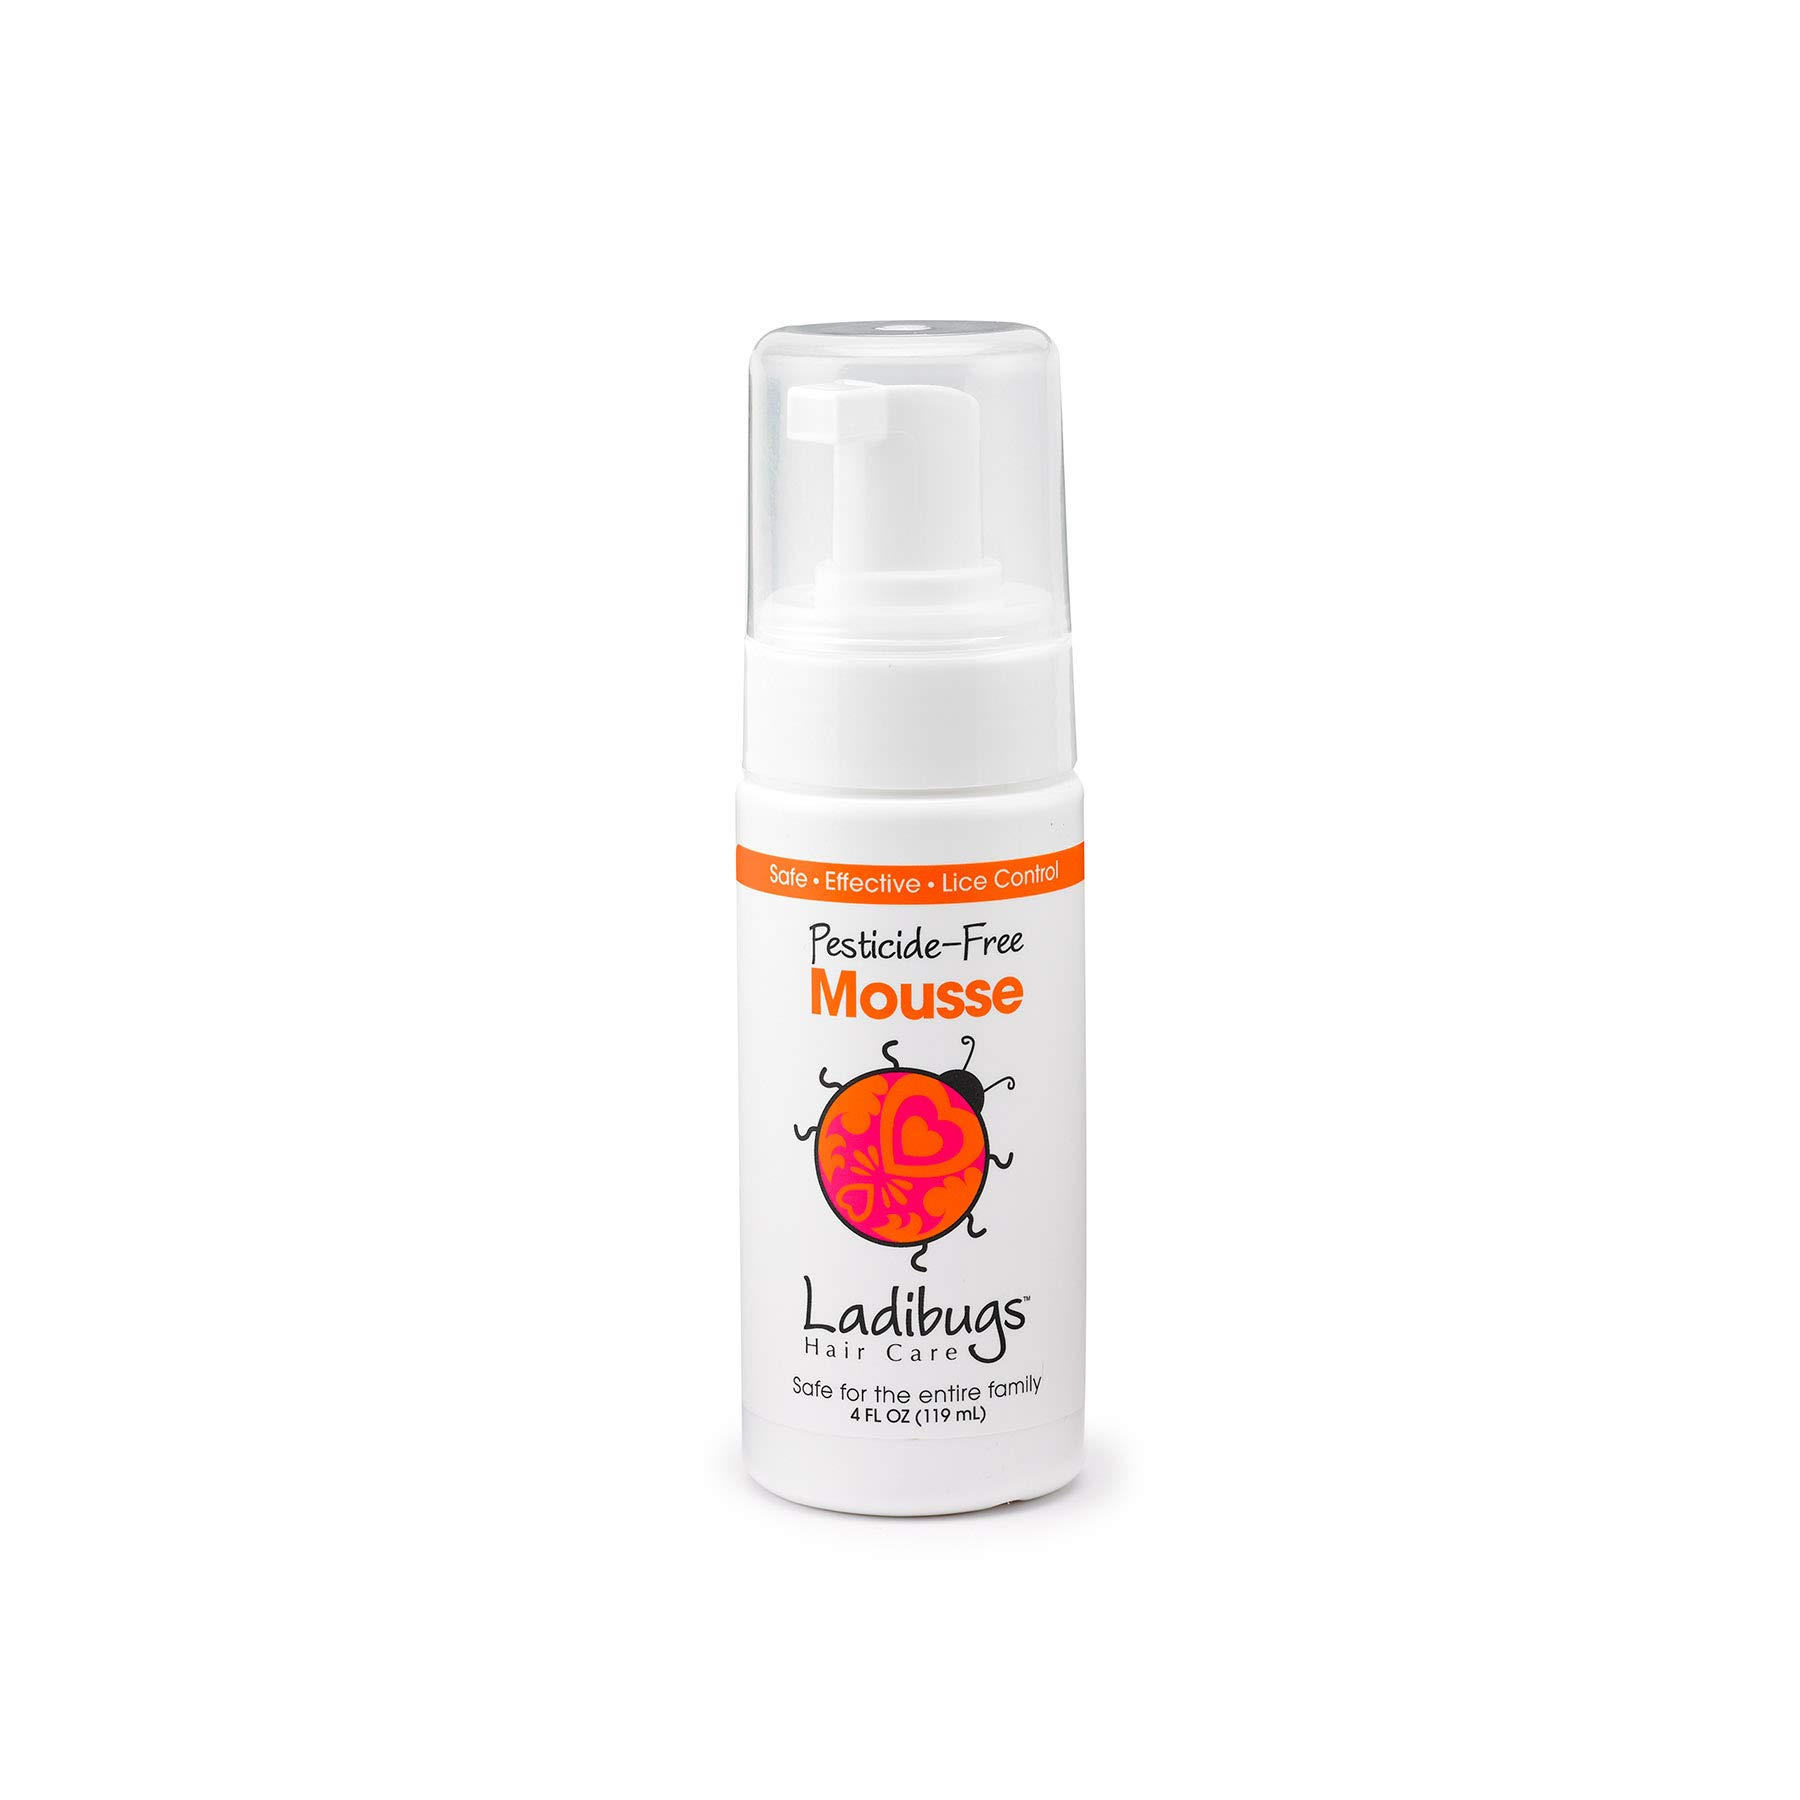 Ladibugs Lice Elimination Mousse 4oz | Nit & Egg Removal | Natural, Non-Toxic, Safe Treatment | Refill Pack. by LADIBUGS